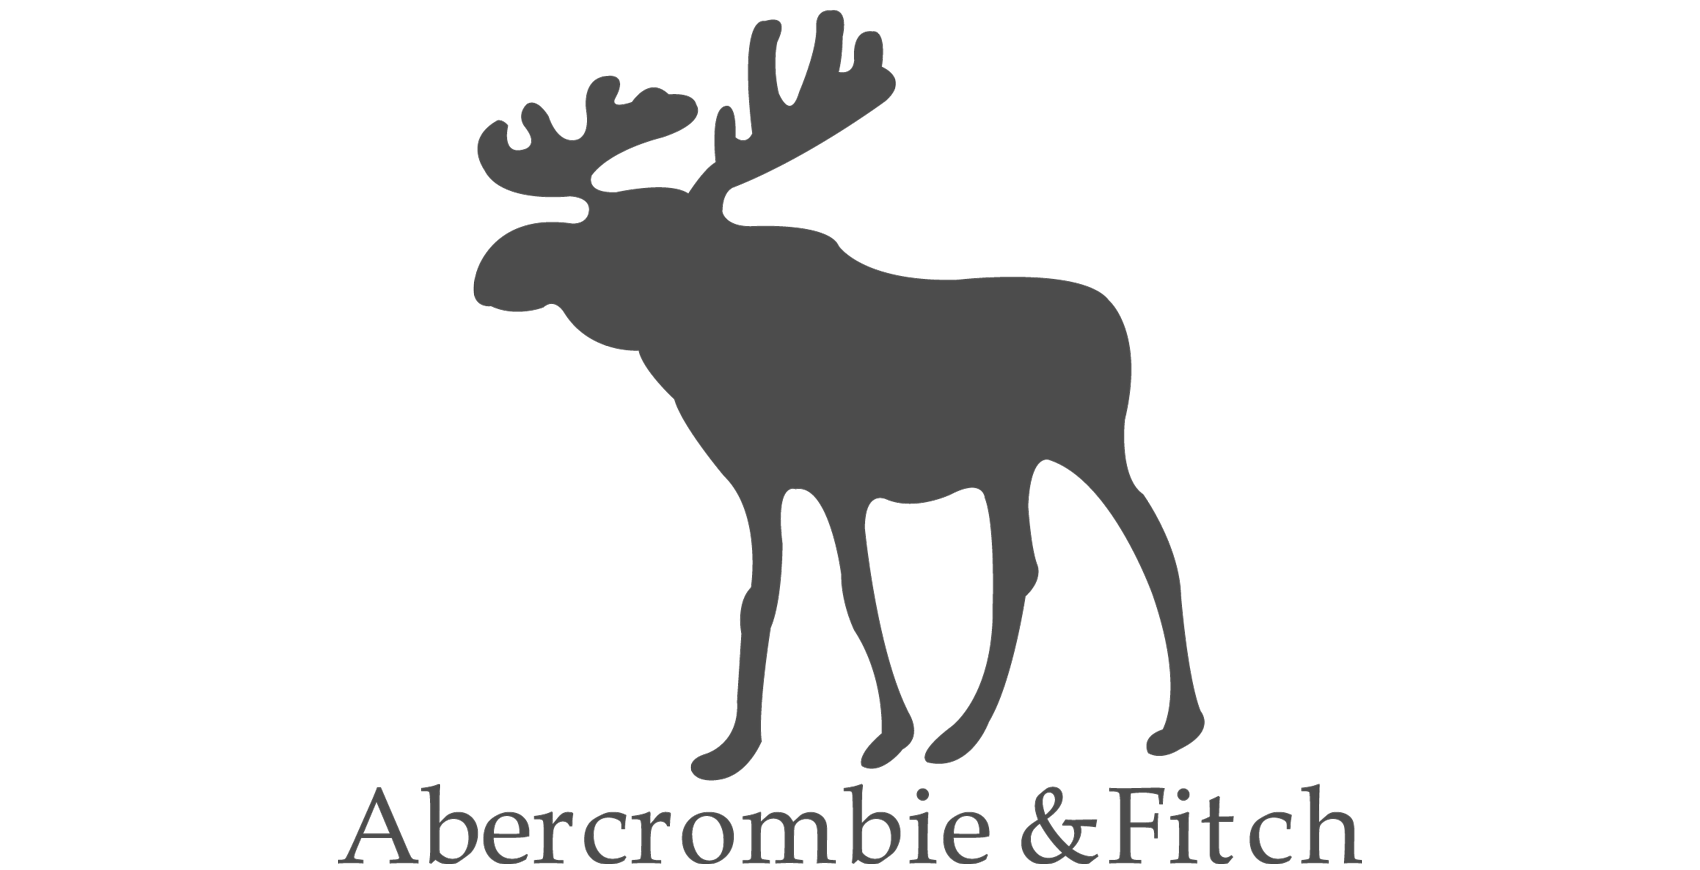 abercrombie and fitch logo abercrombie and fitch symbol